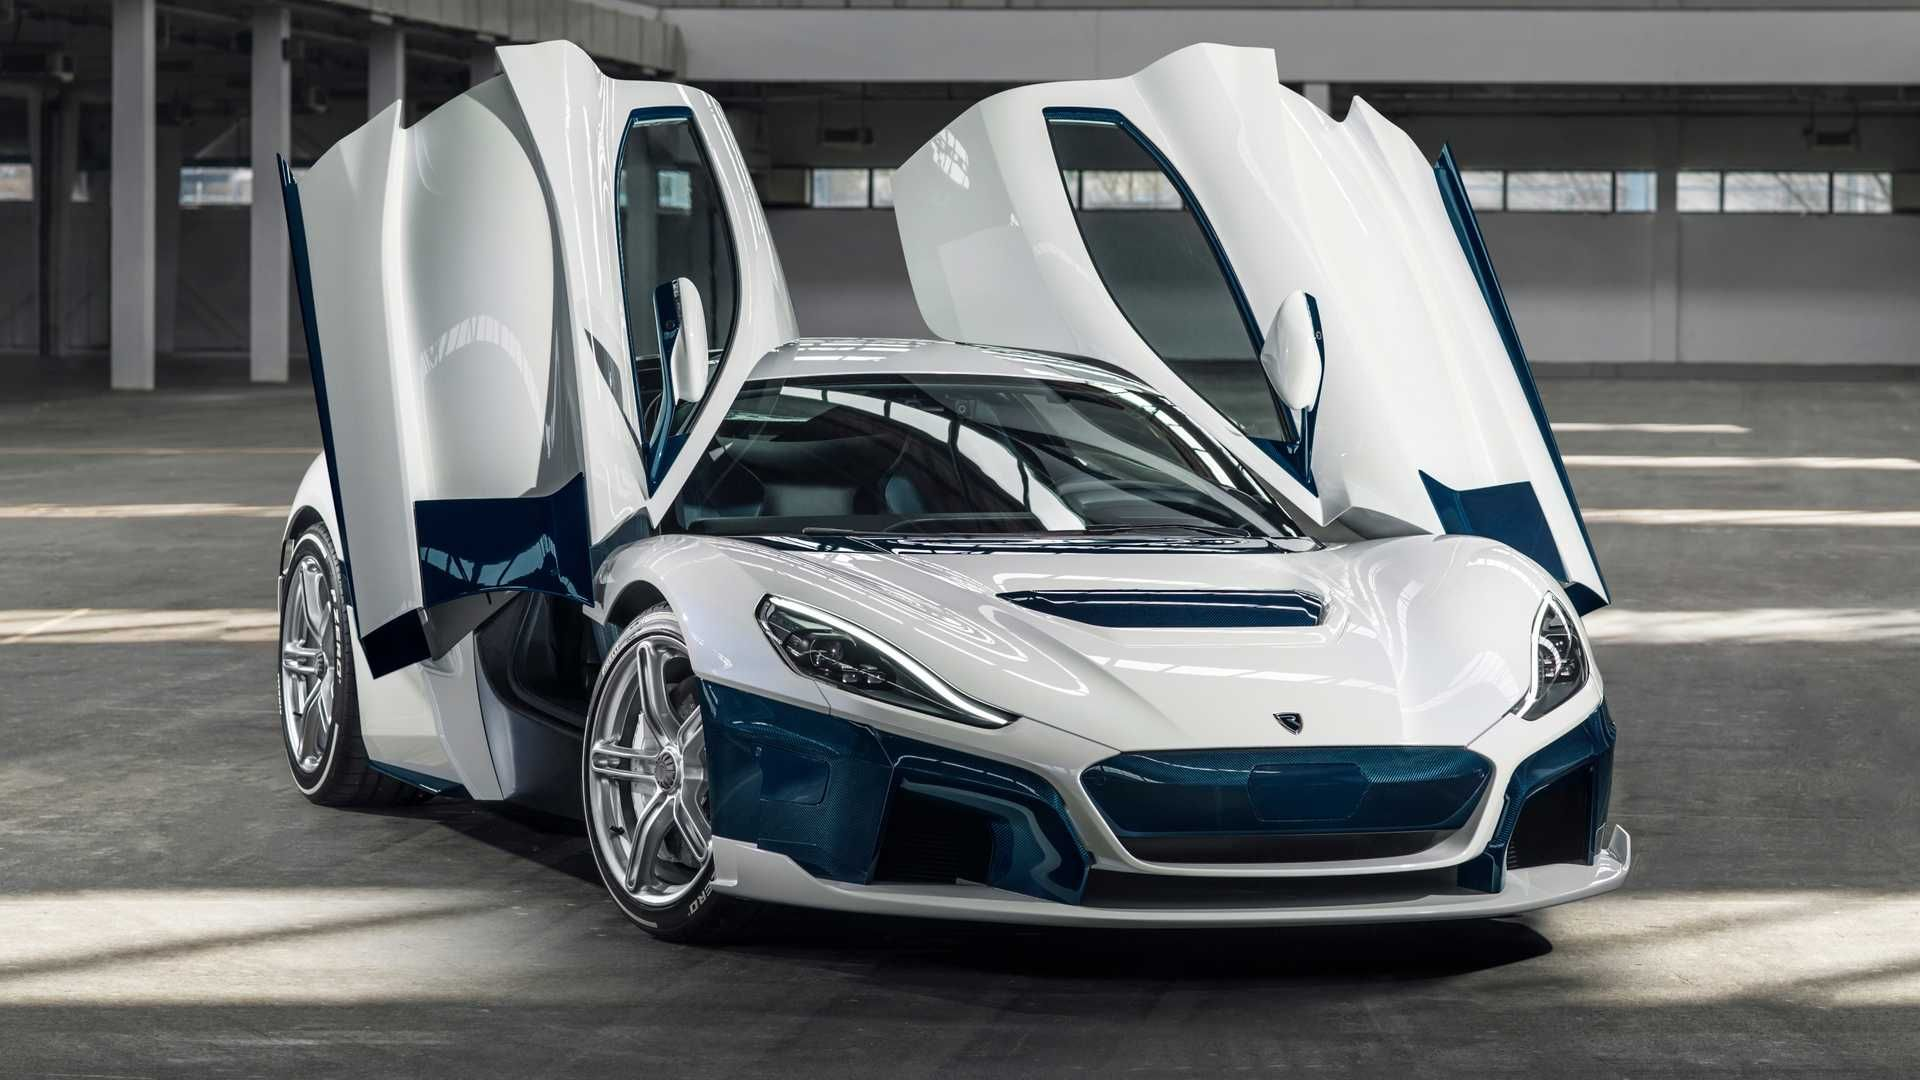 Production Rimac C_Two Could Pack Even More Heat Than